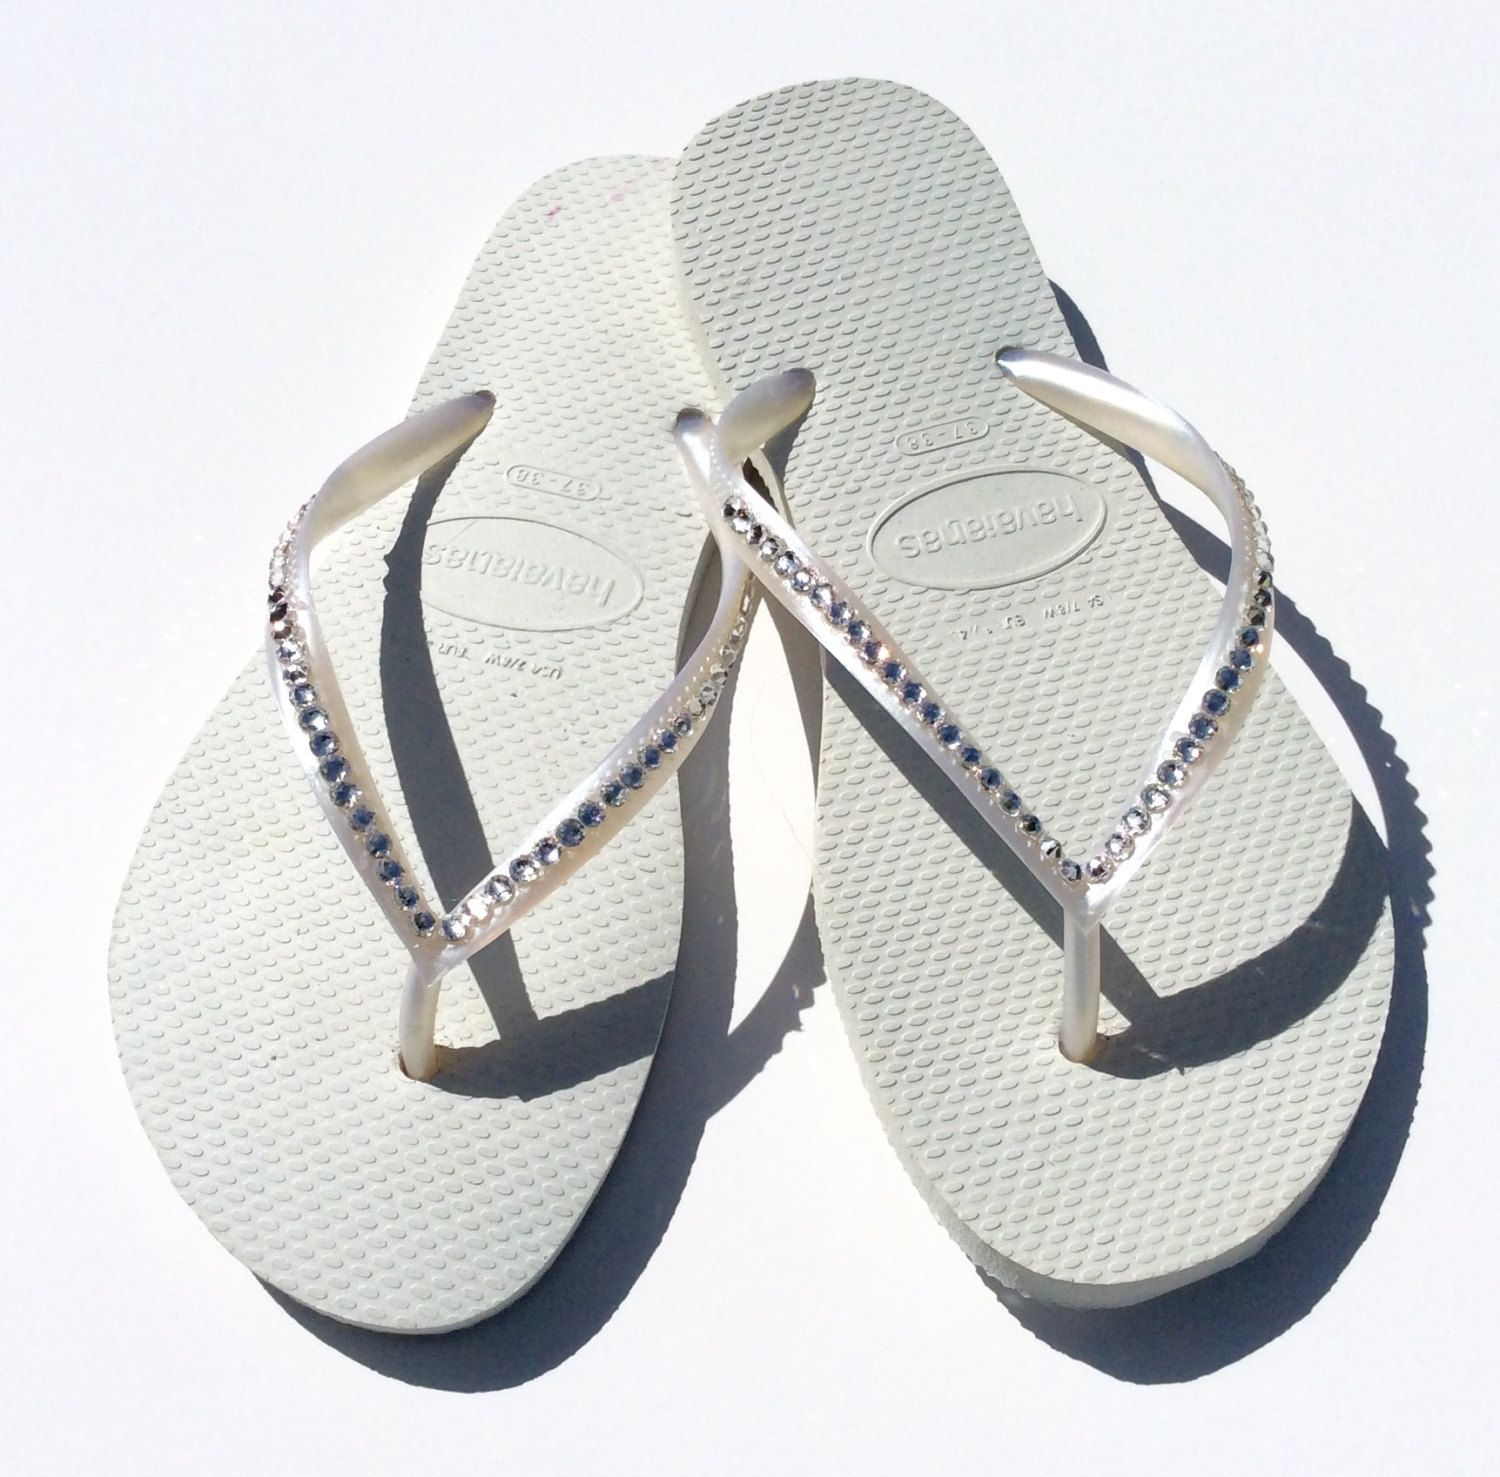 db4d92daaddd Genuine Brazilian Havaianas with Thin Straps covered in SWAROVSKI® ELEMENTS  - Crystal (Clear)